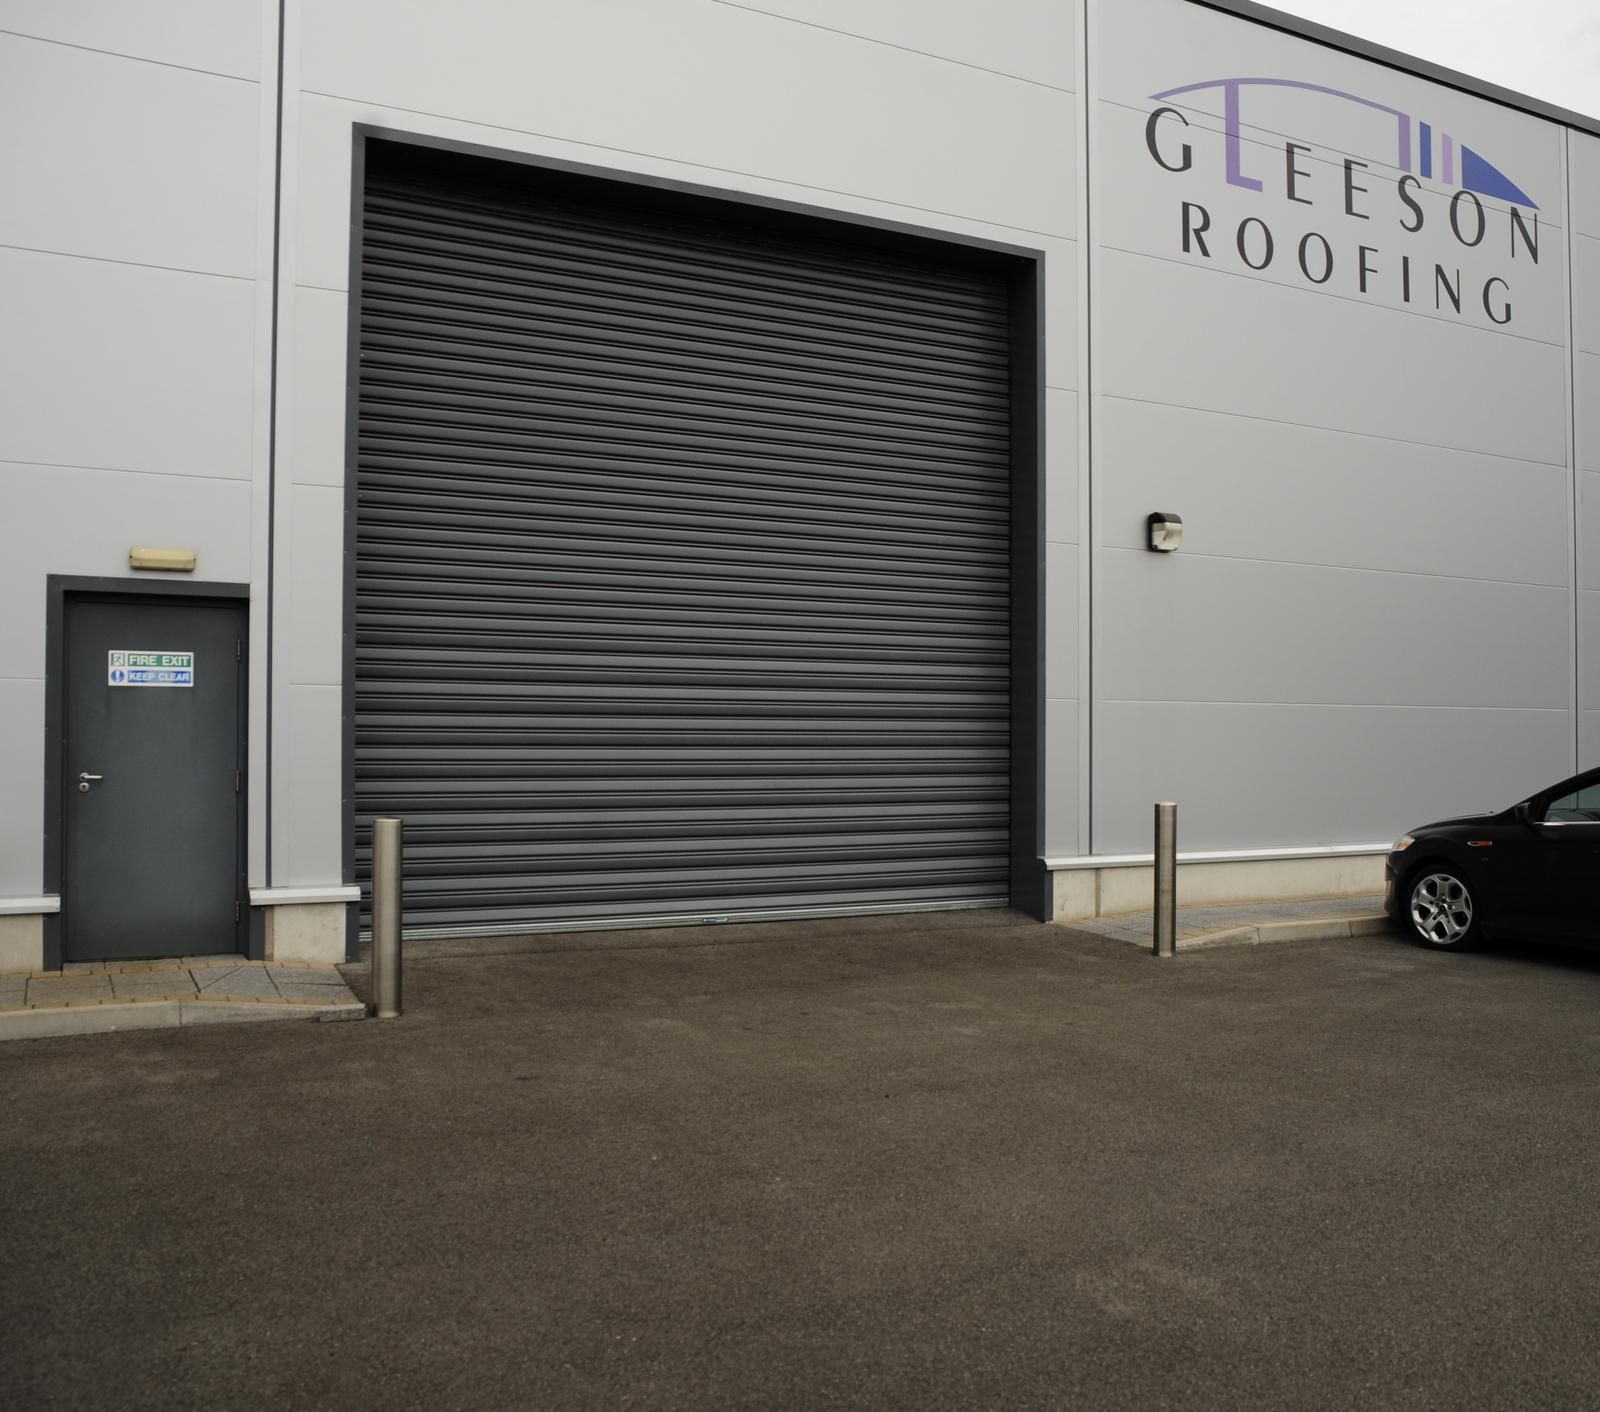 Best Choice Garage Doors Are A Company Specializing In The Manufacture Of Industrial Roller Doors Security Shutter Garage Doors Roller Doors Security Shutters